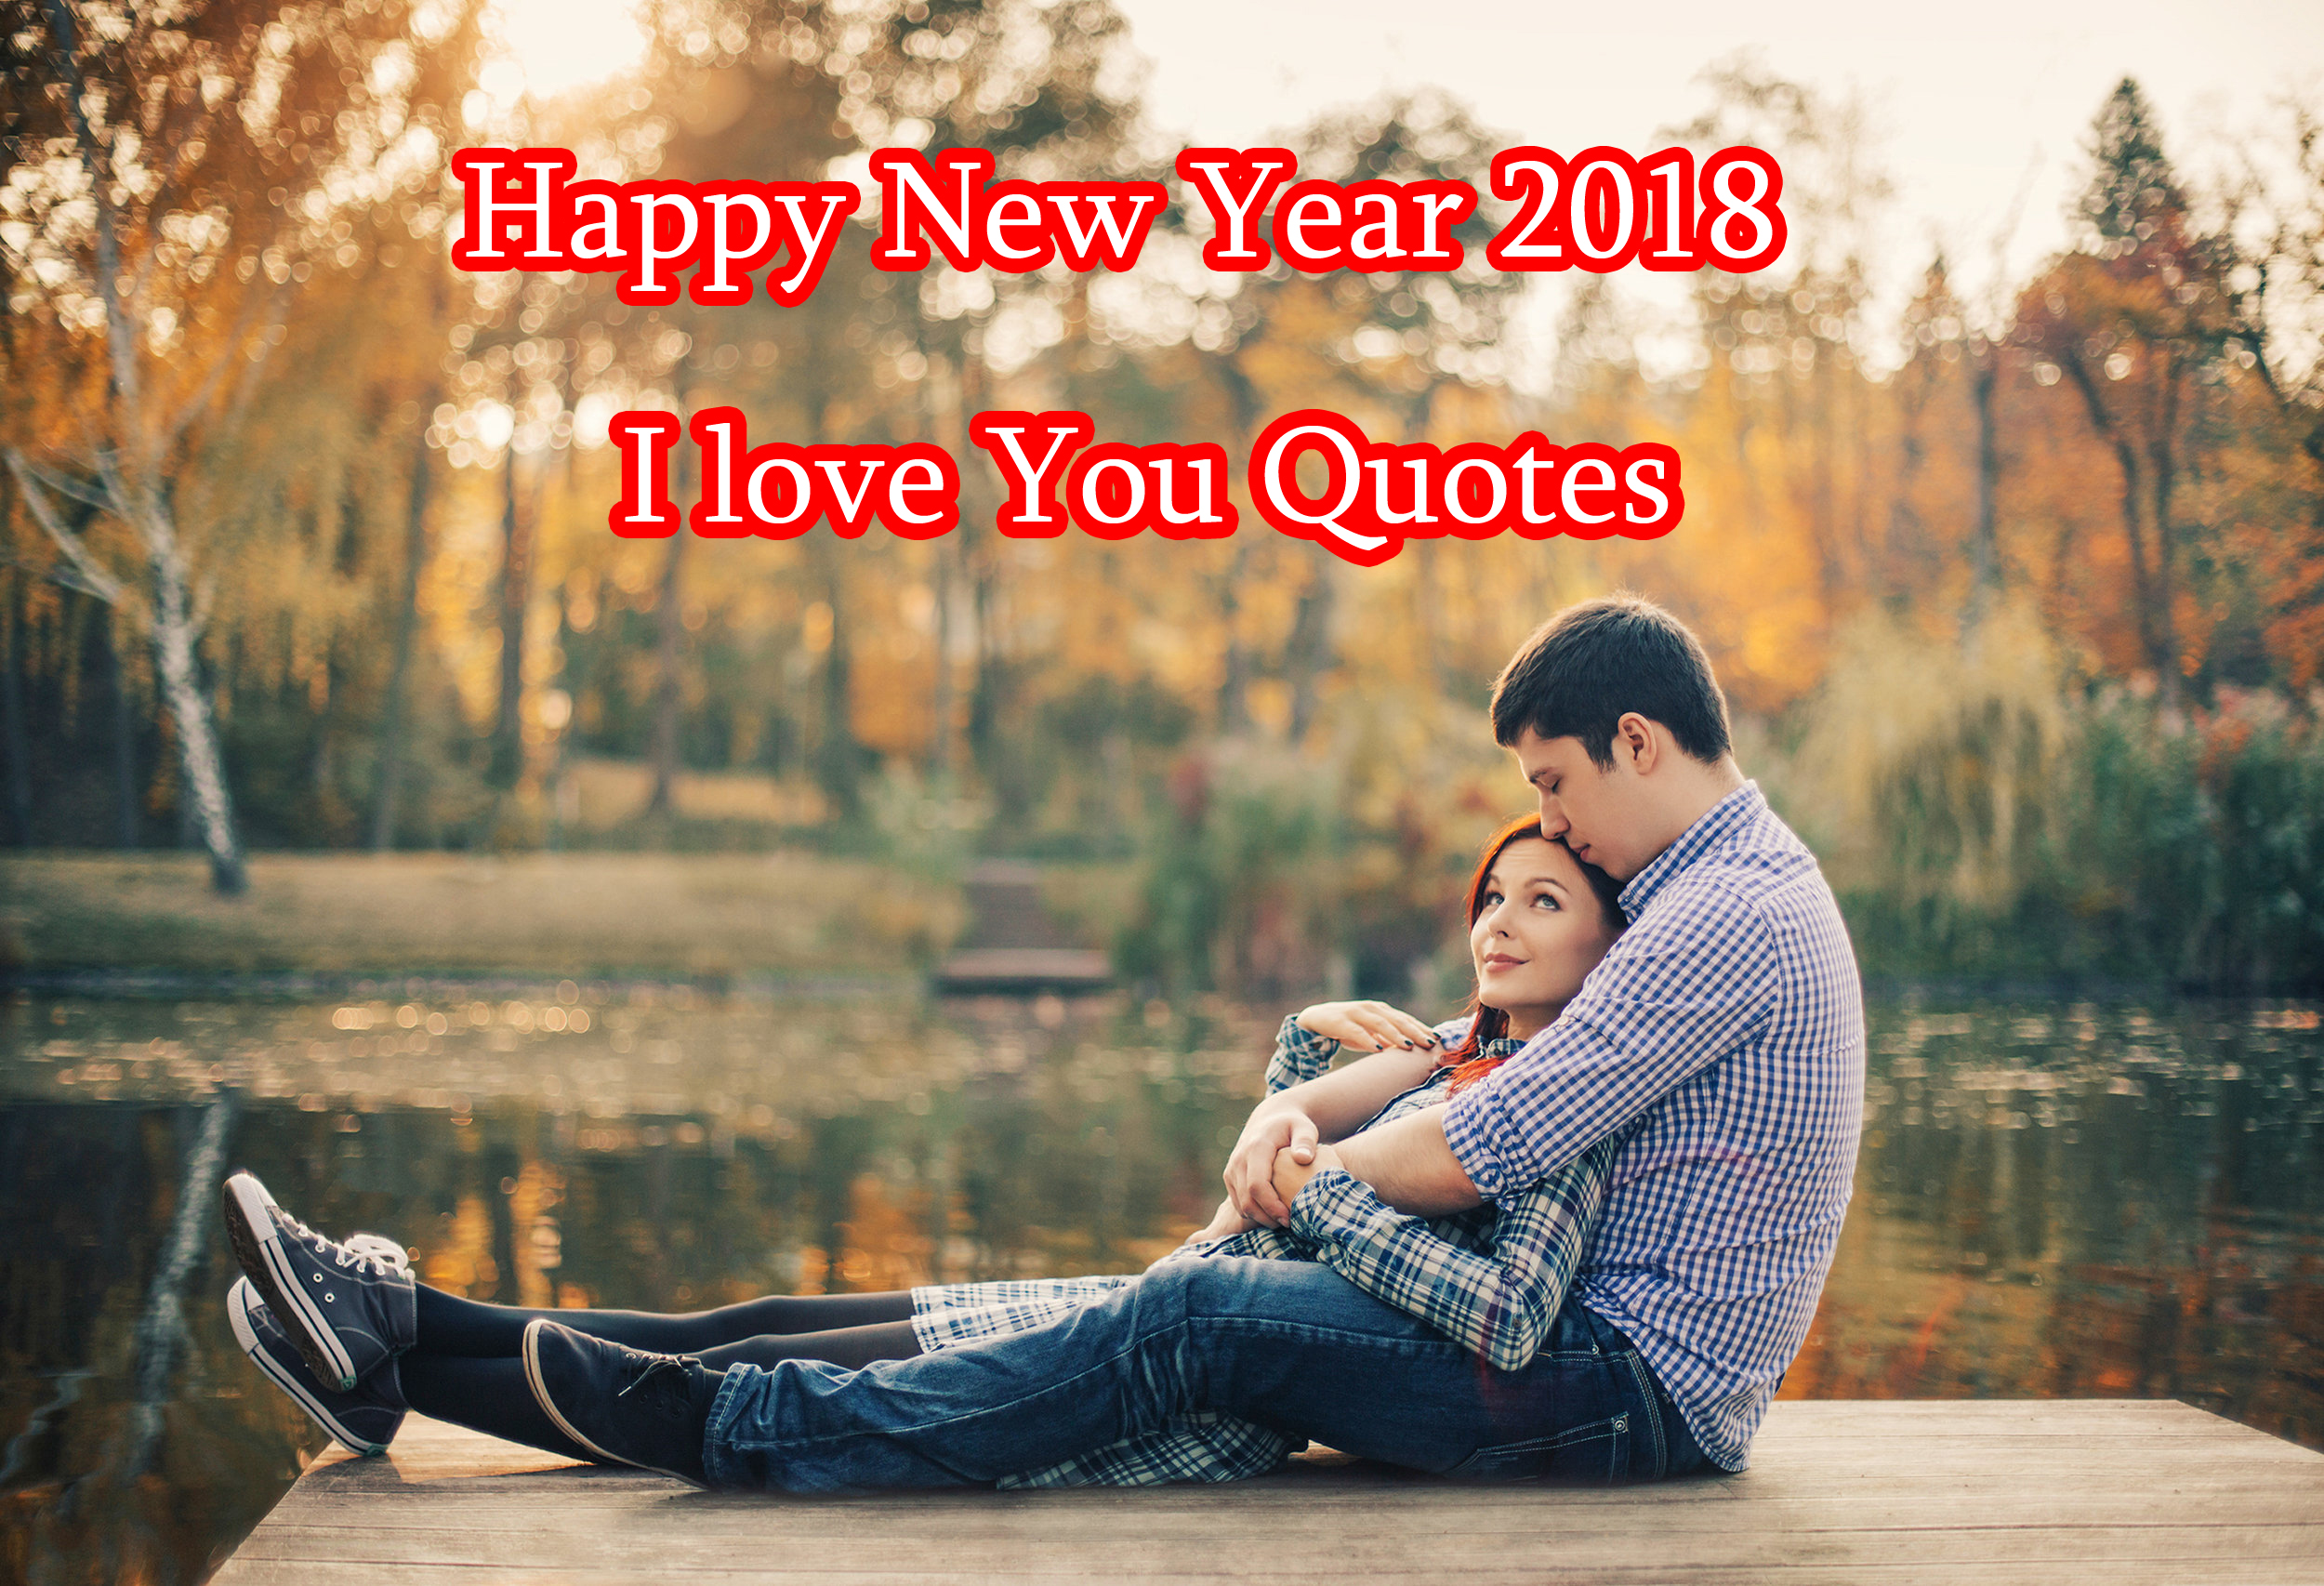 20 happy new year 2019 i love you quotes images for couples happy new year 2019 quotes wishes sayings images